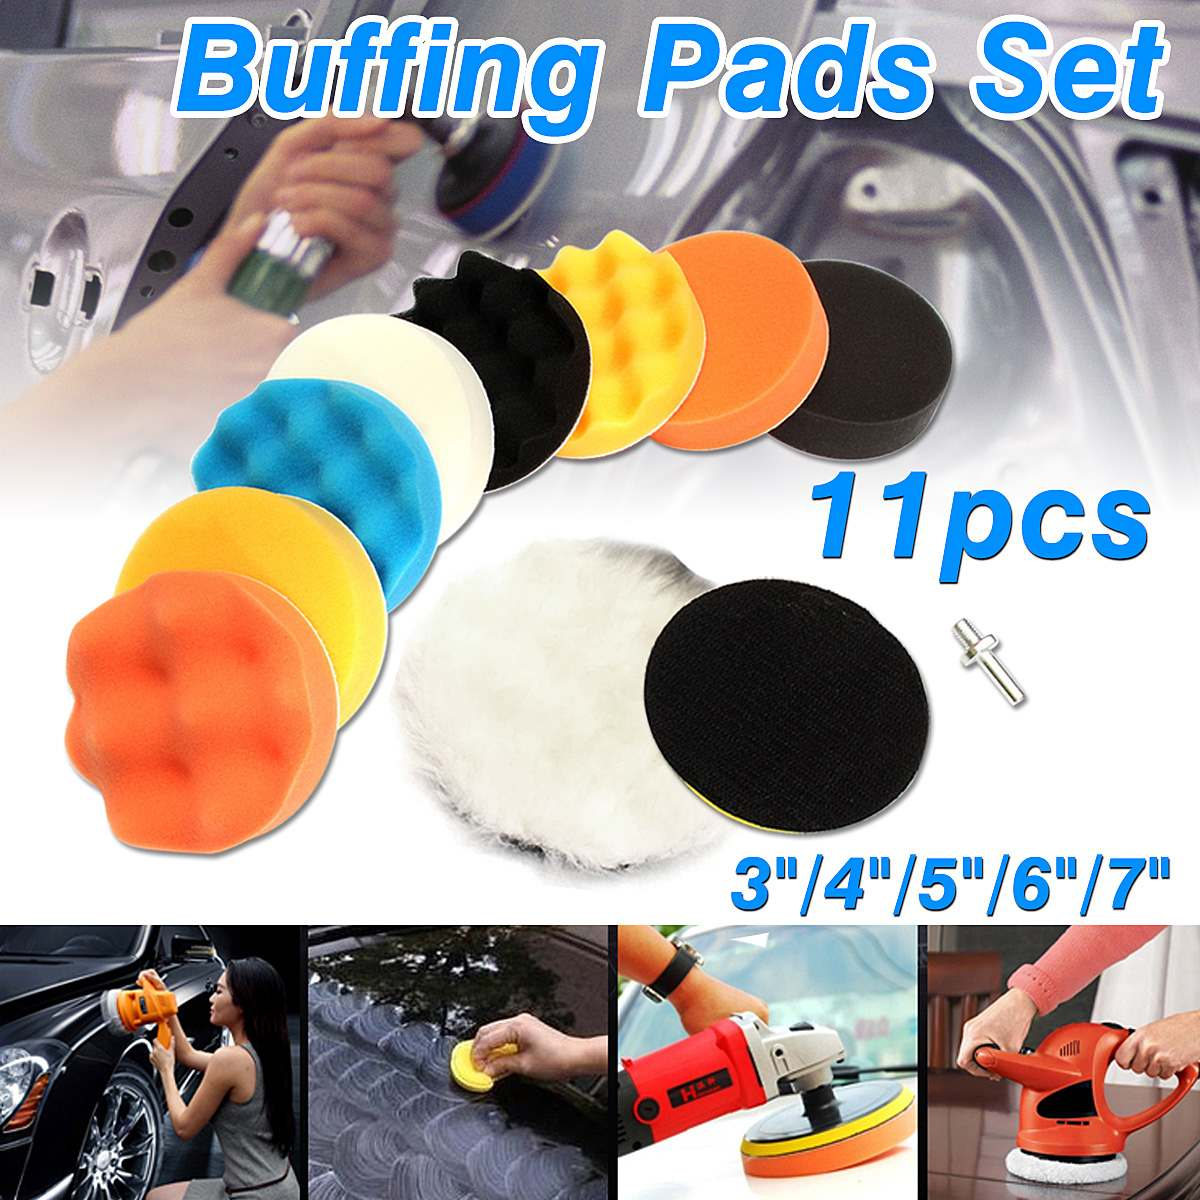 11pcs 100mm/4 Gross Buffer Compound Waxing Polishing Wheel Tool Sponge Pad Drill Adapter Kit Set For Auto Car Polisher